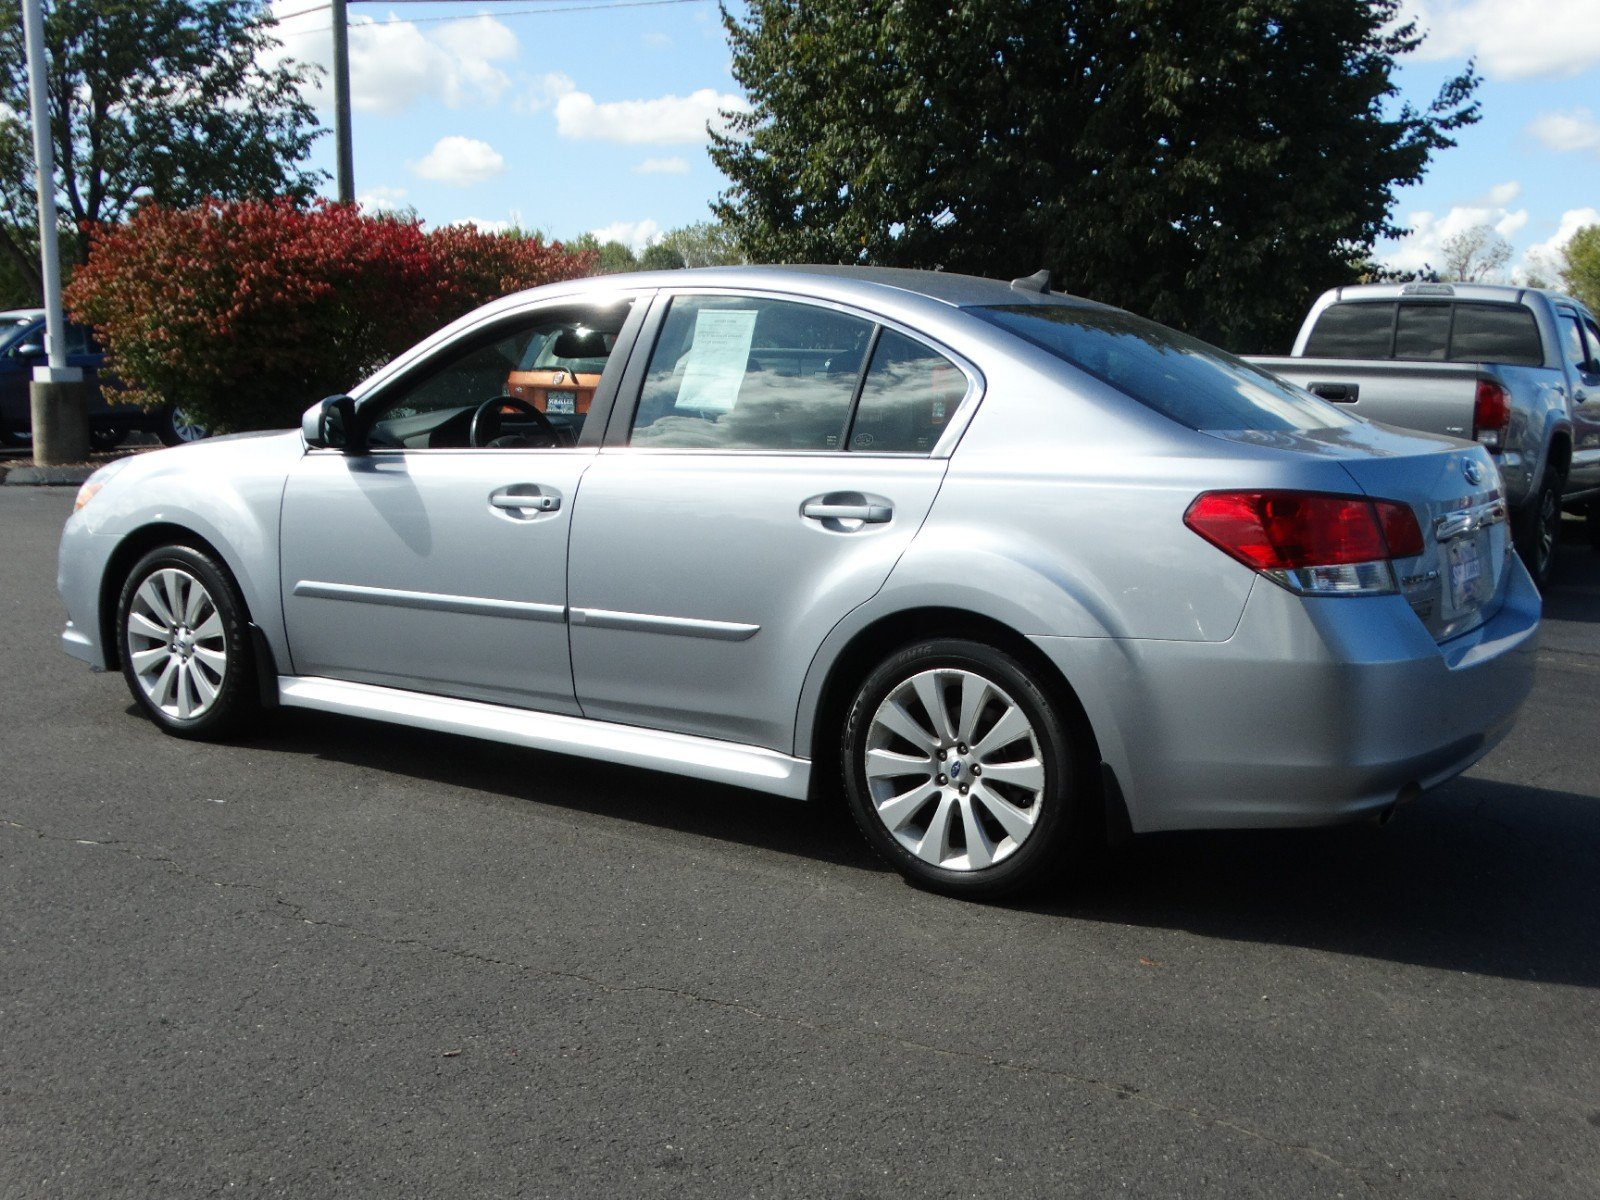 pre-owned 2012 subaru legacy 2.5i limited 4dr car in berlin